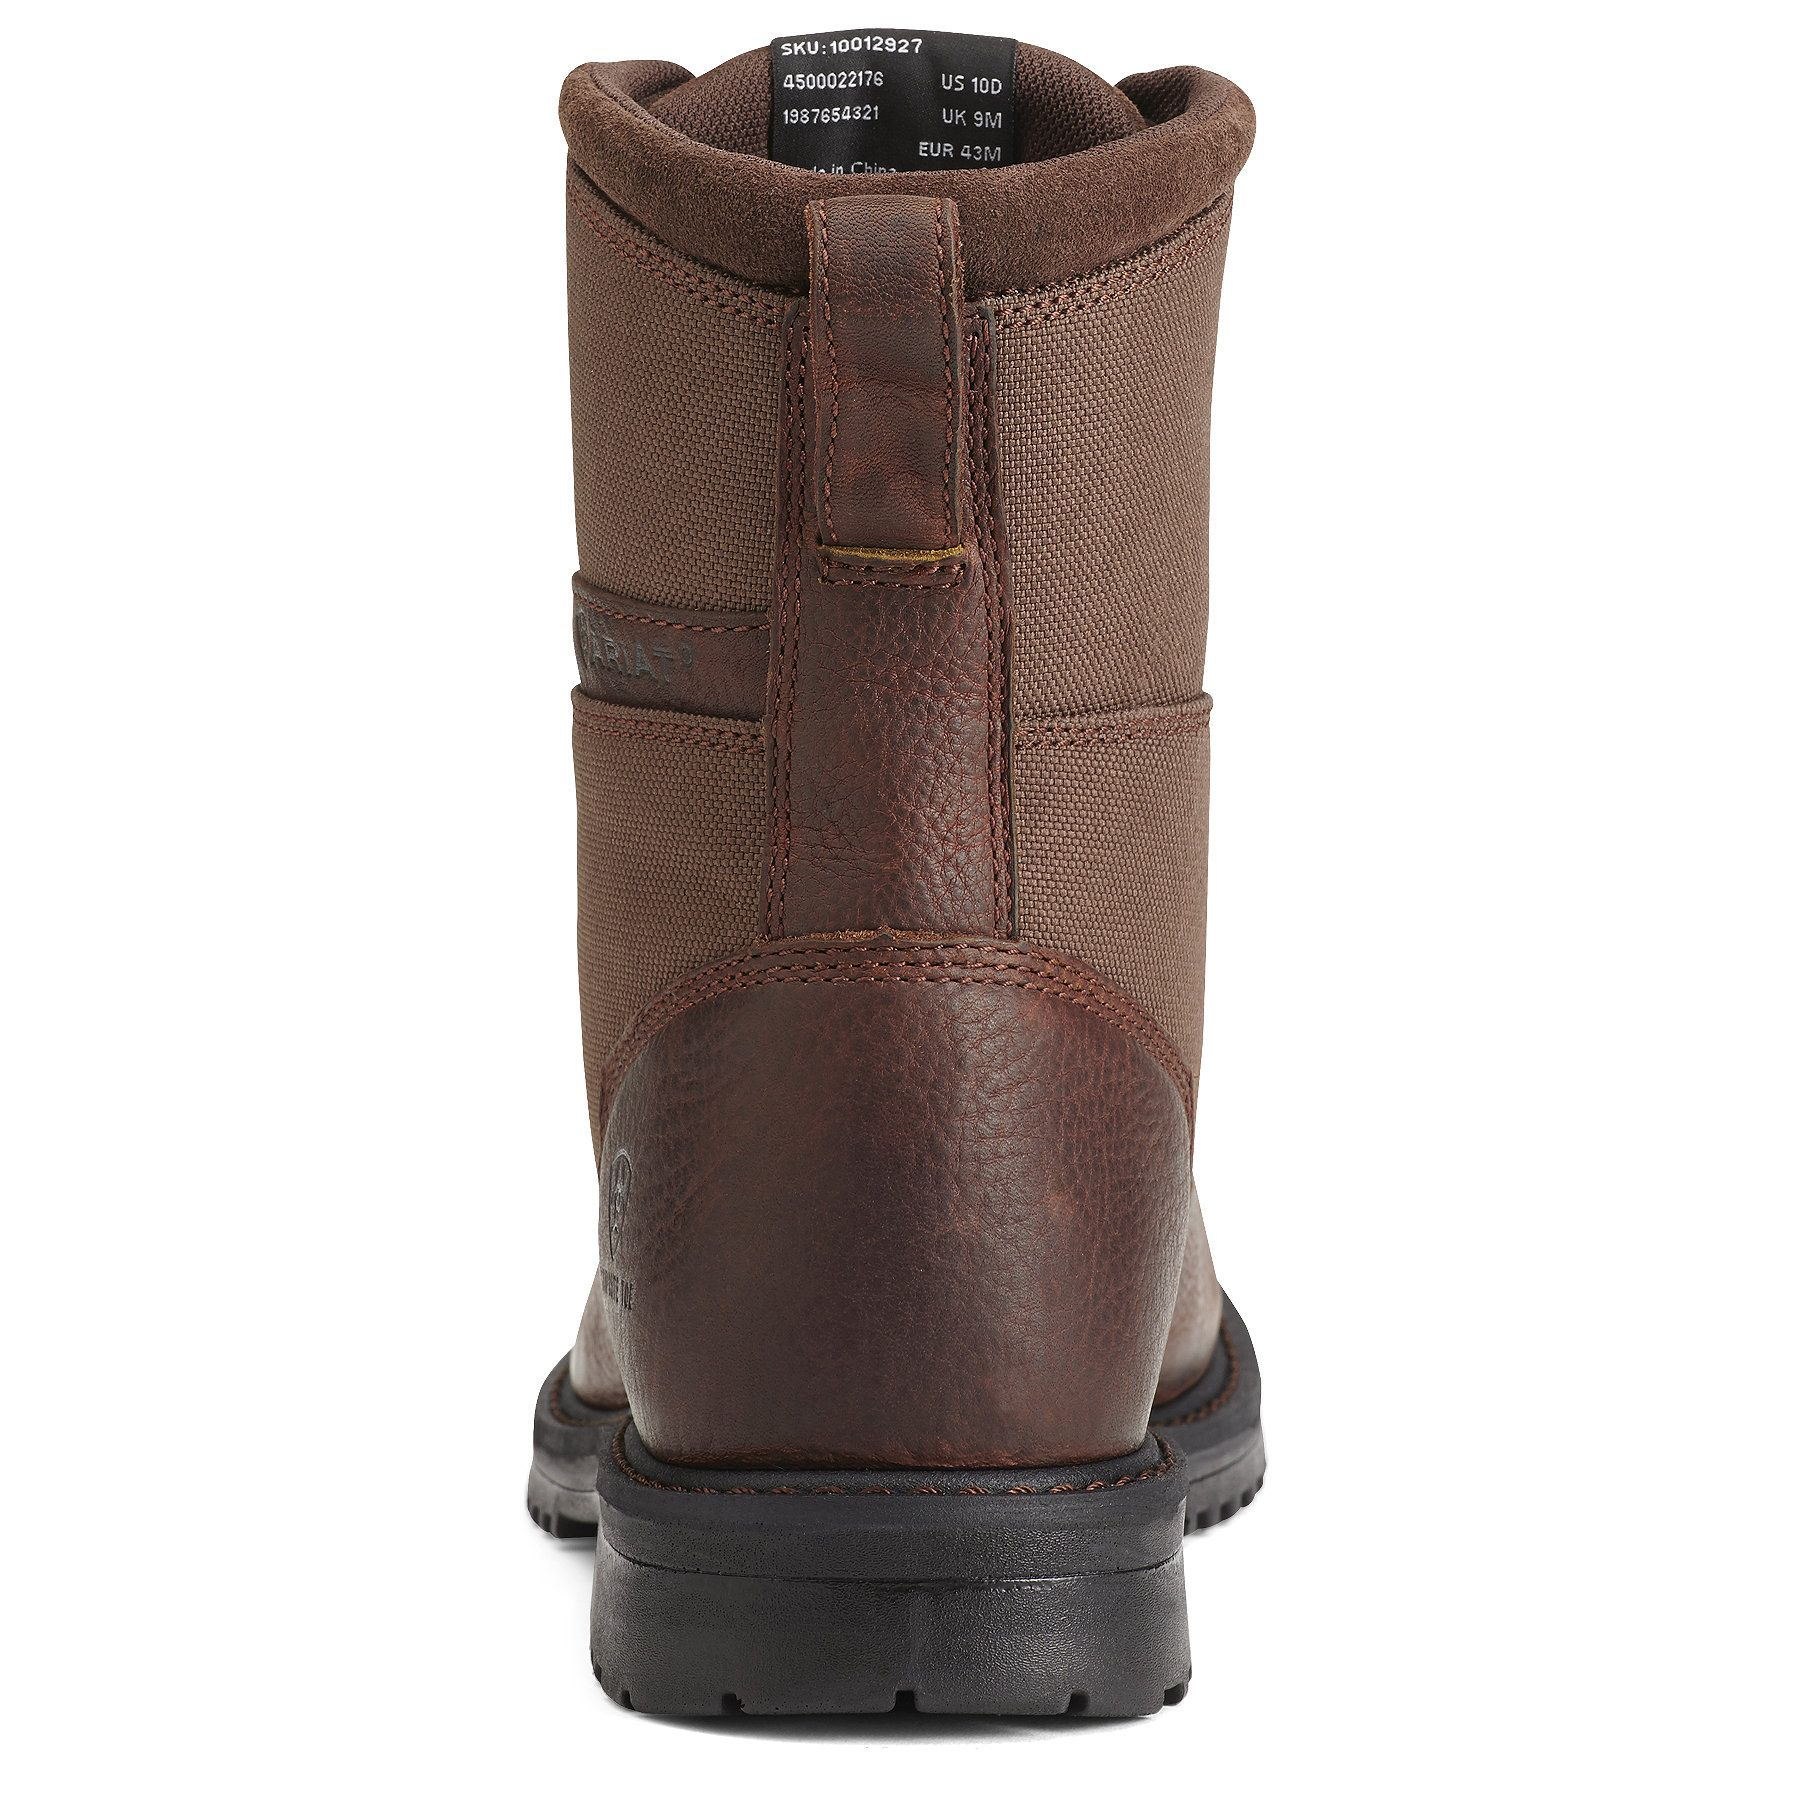 Men S Rigtek 8 Wide Square Composite Toe Work Boots In Oiled Brown Leather Size 11 Ee Wide By Ariat Composite Toe Work Boots Brown Leather Boots